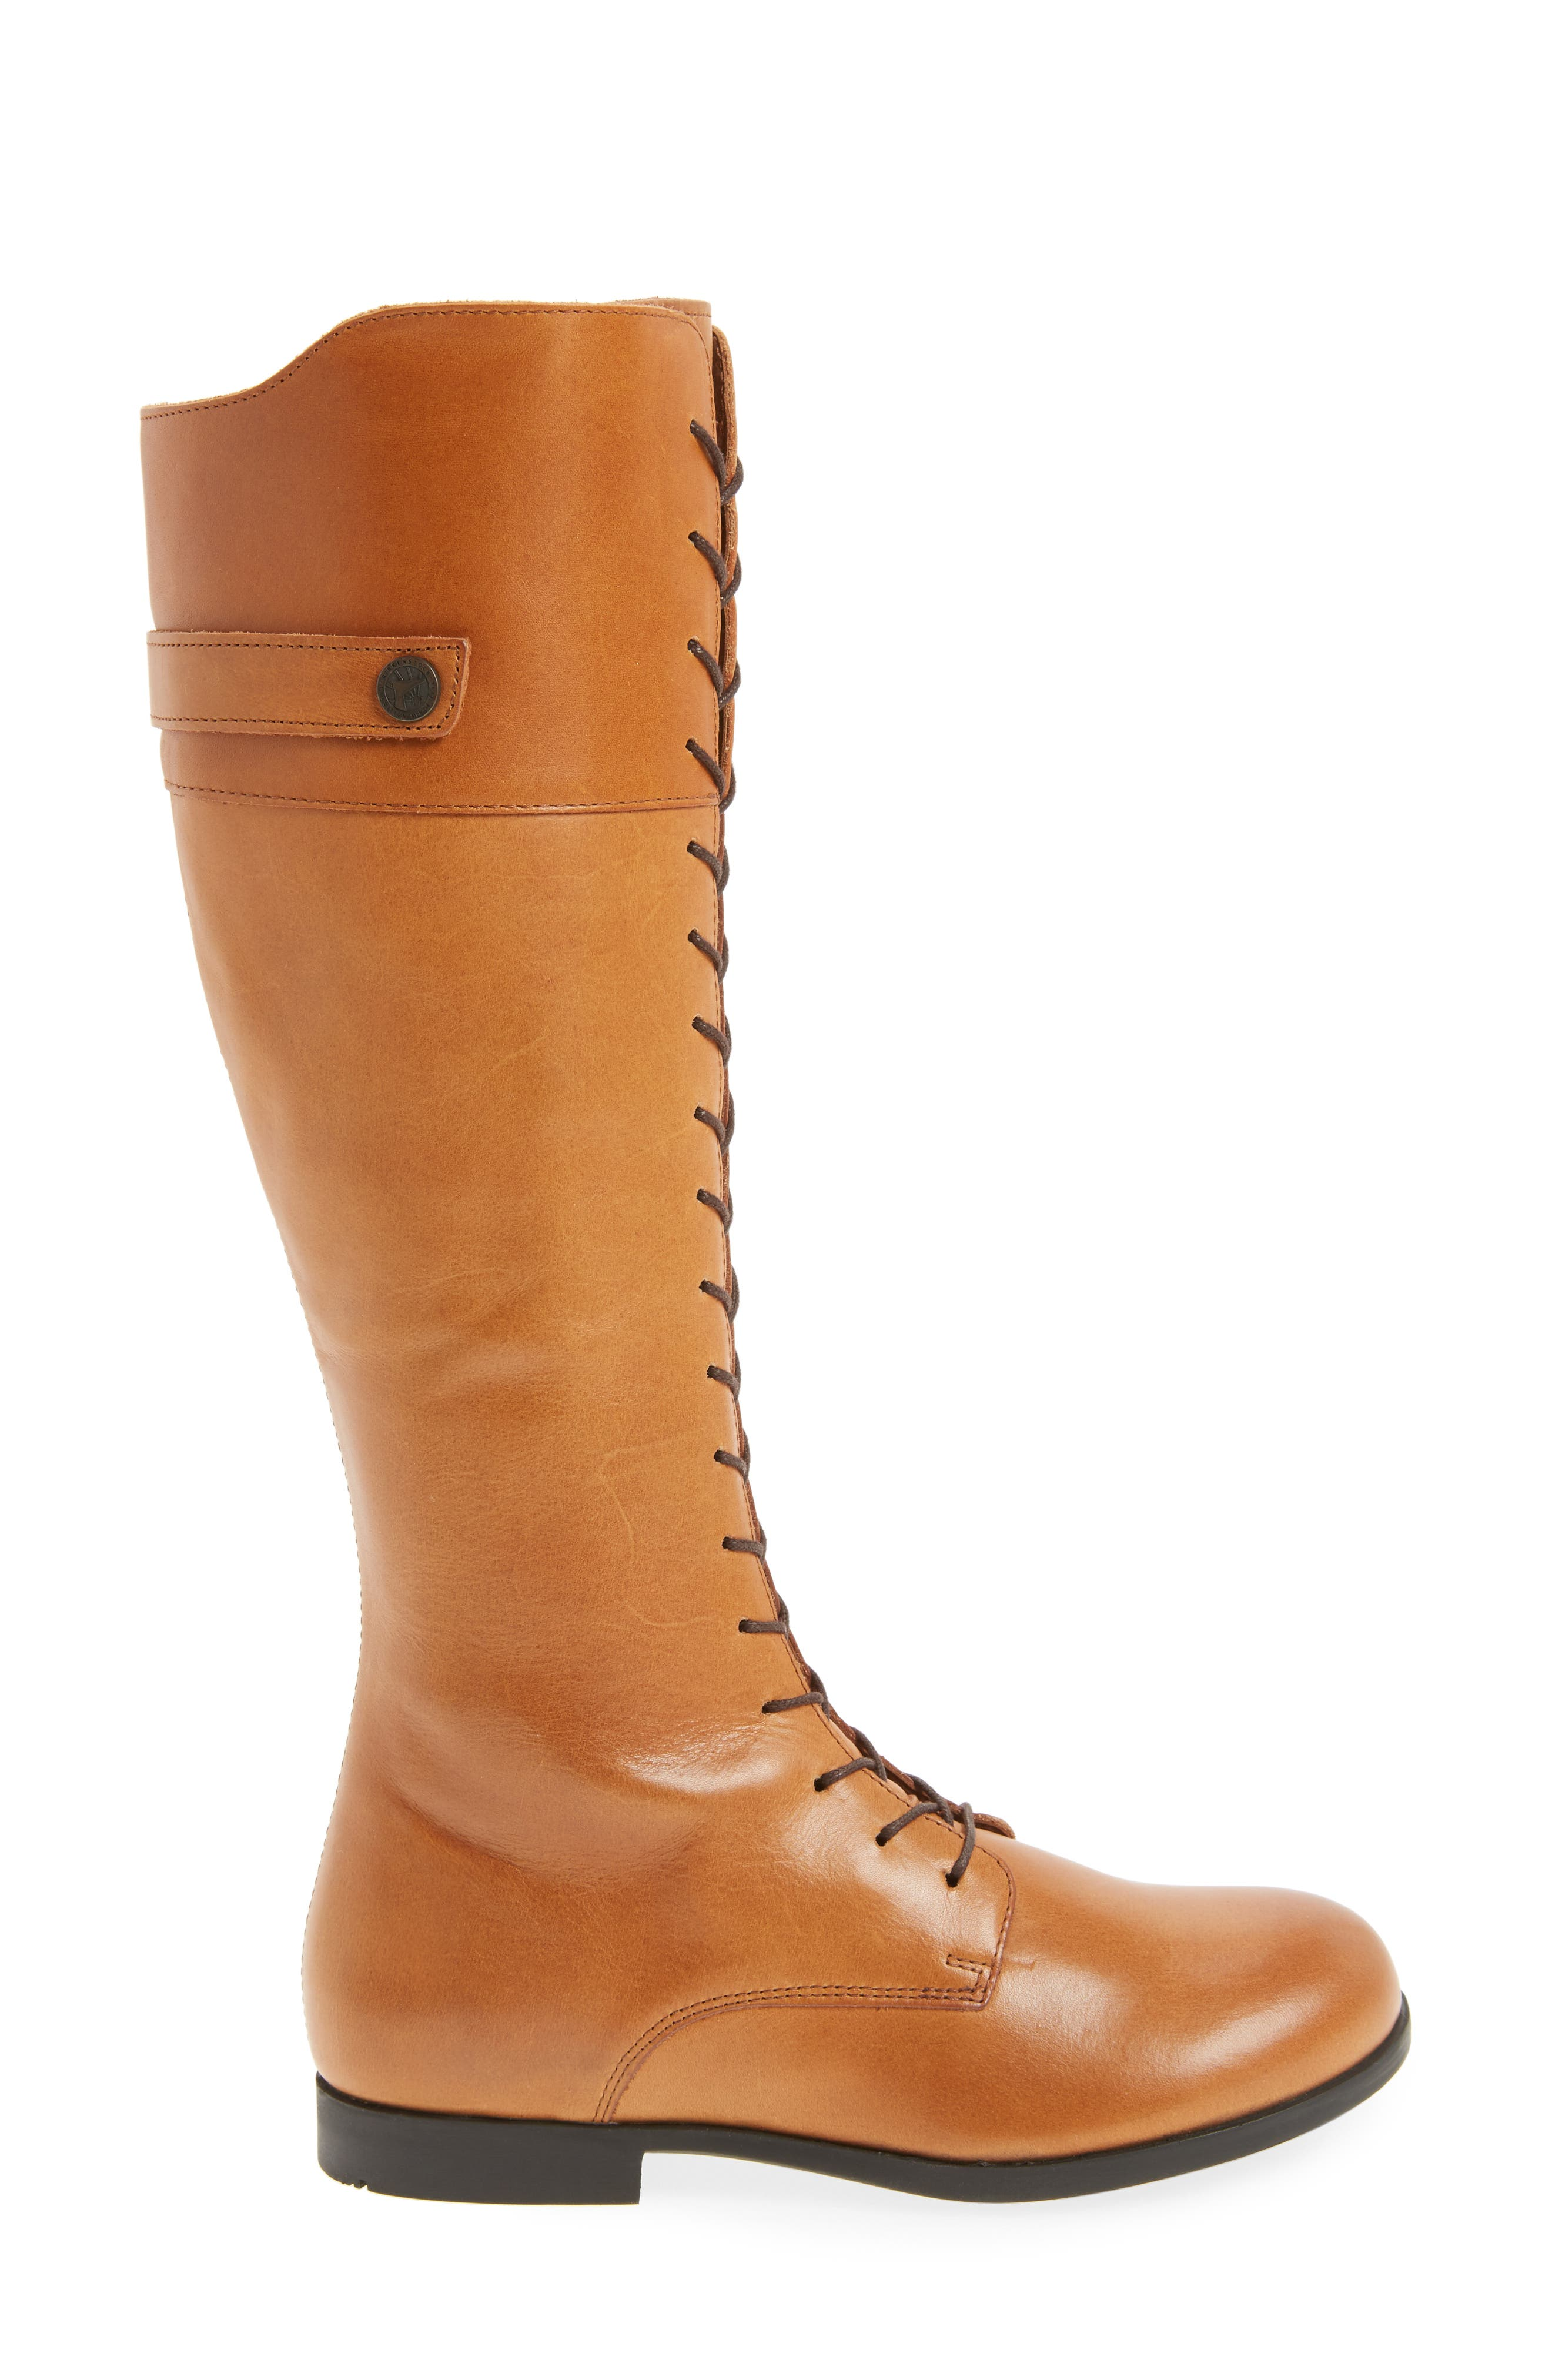 Longford Knee-High Lace-Up Boot,                             Alternate thumbnail 3, color,                             200